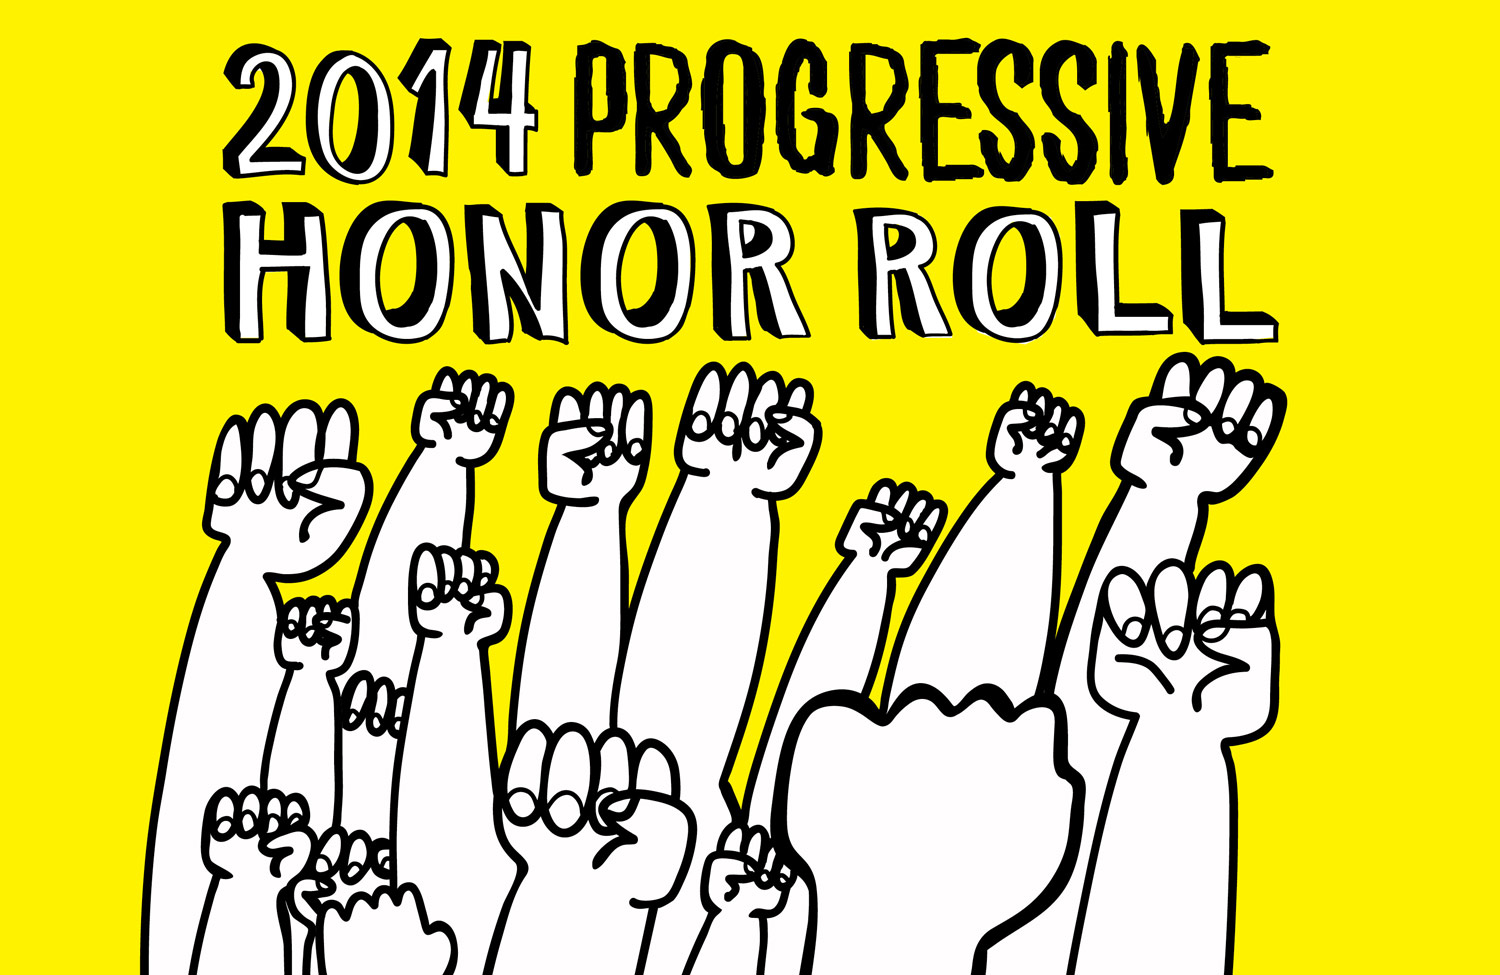 2014-Progressive-Honor-Roll